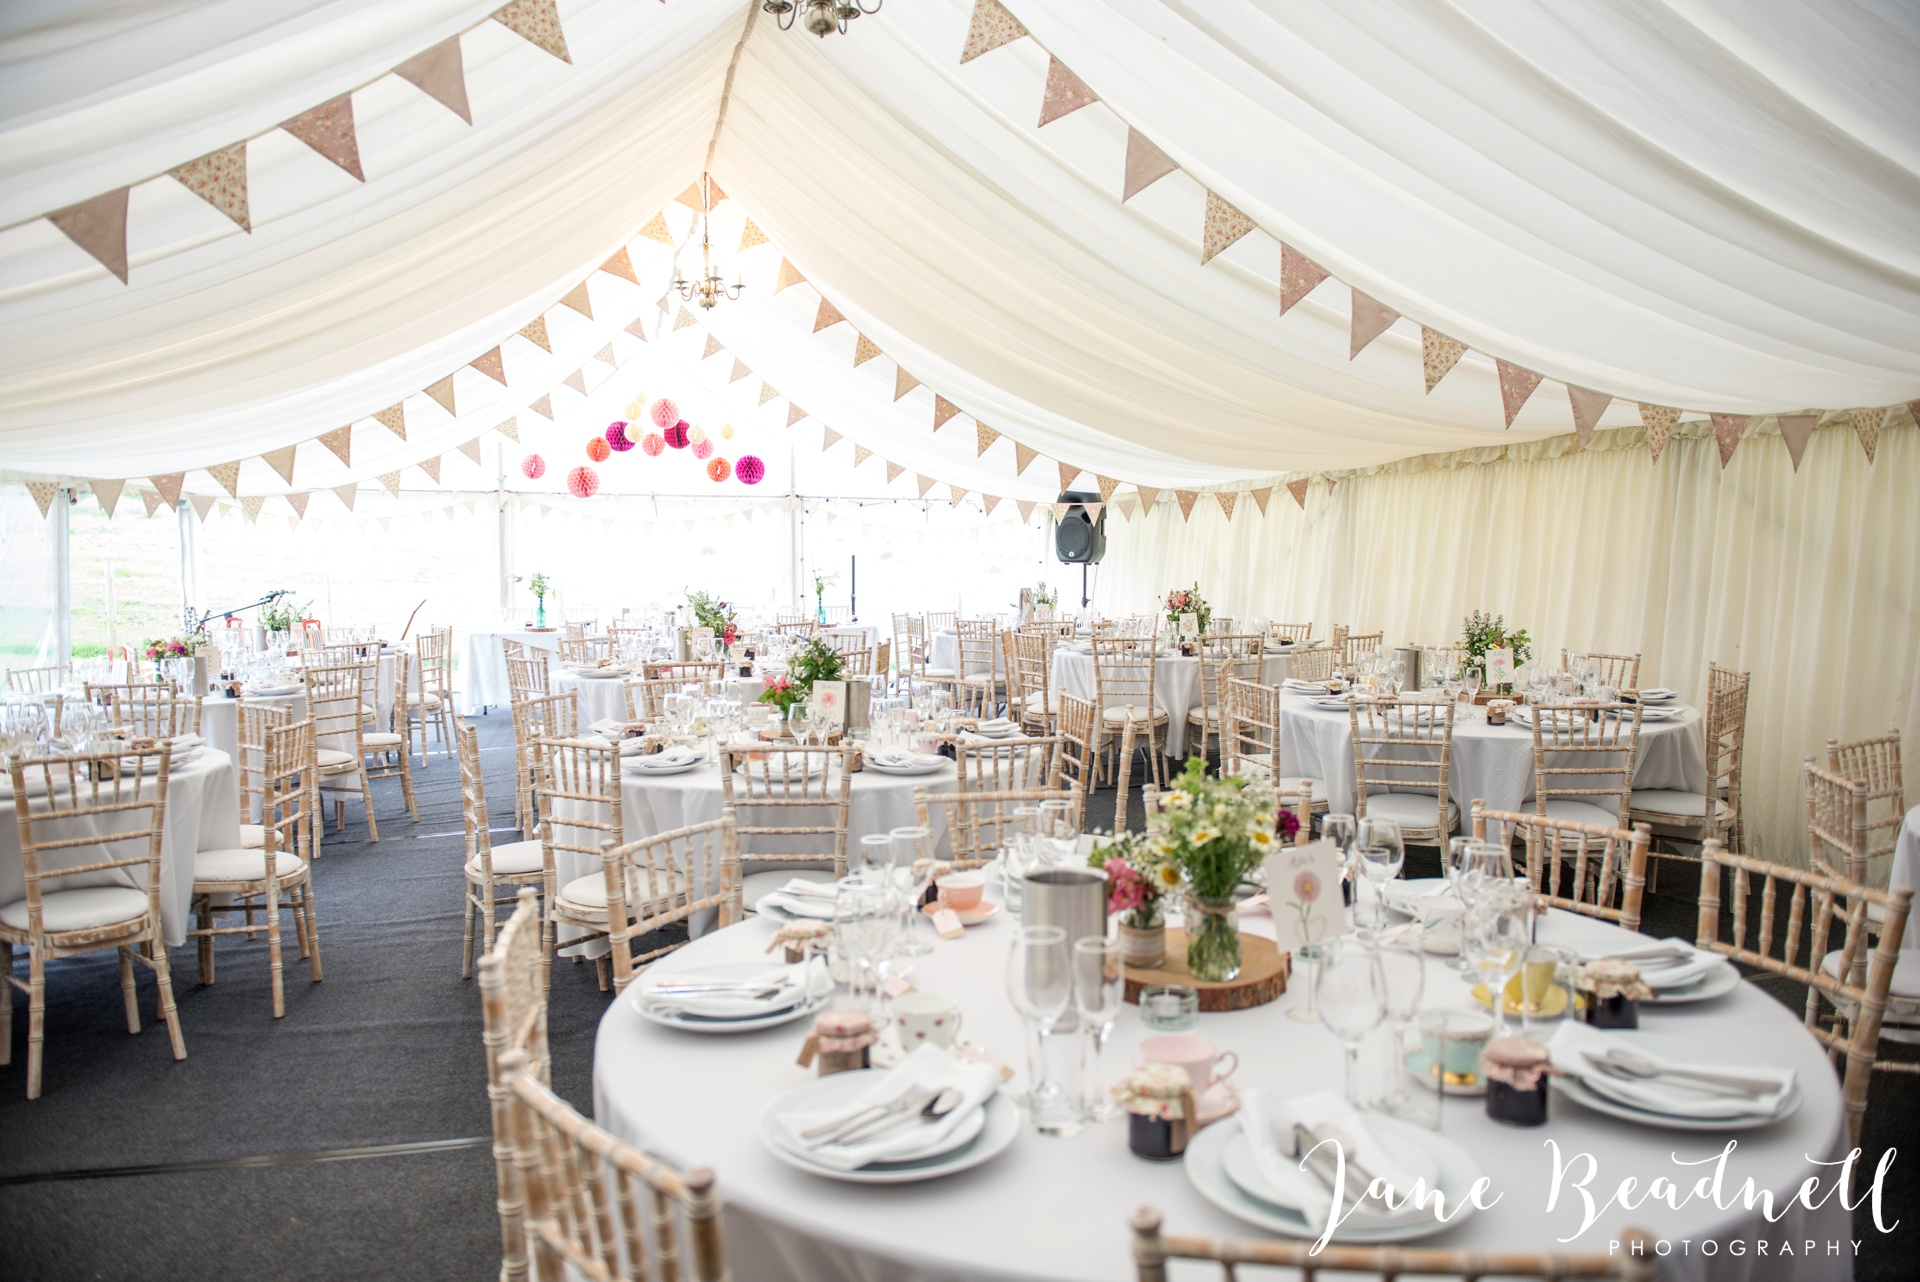 Yorkshire Wedding Photography the cheerful Chilli Barn Wedding by Jane Beadnell Photography_0112